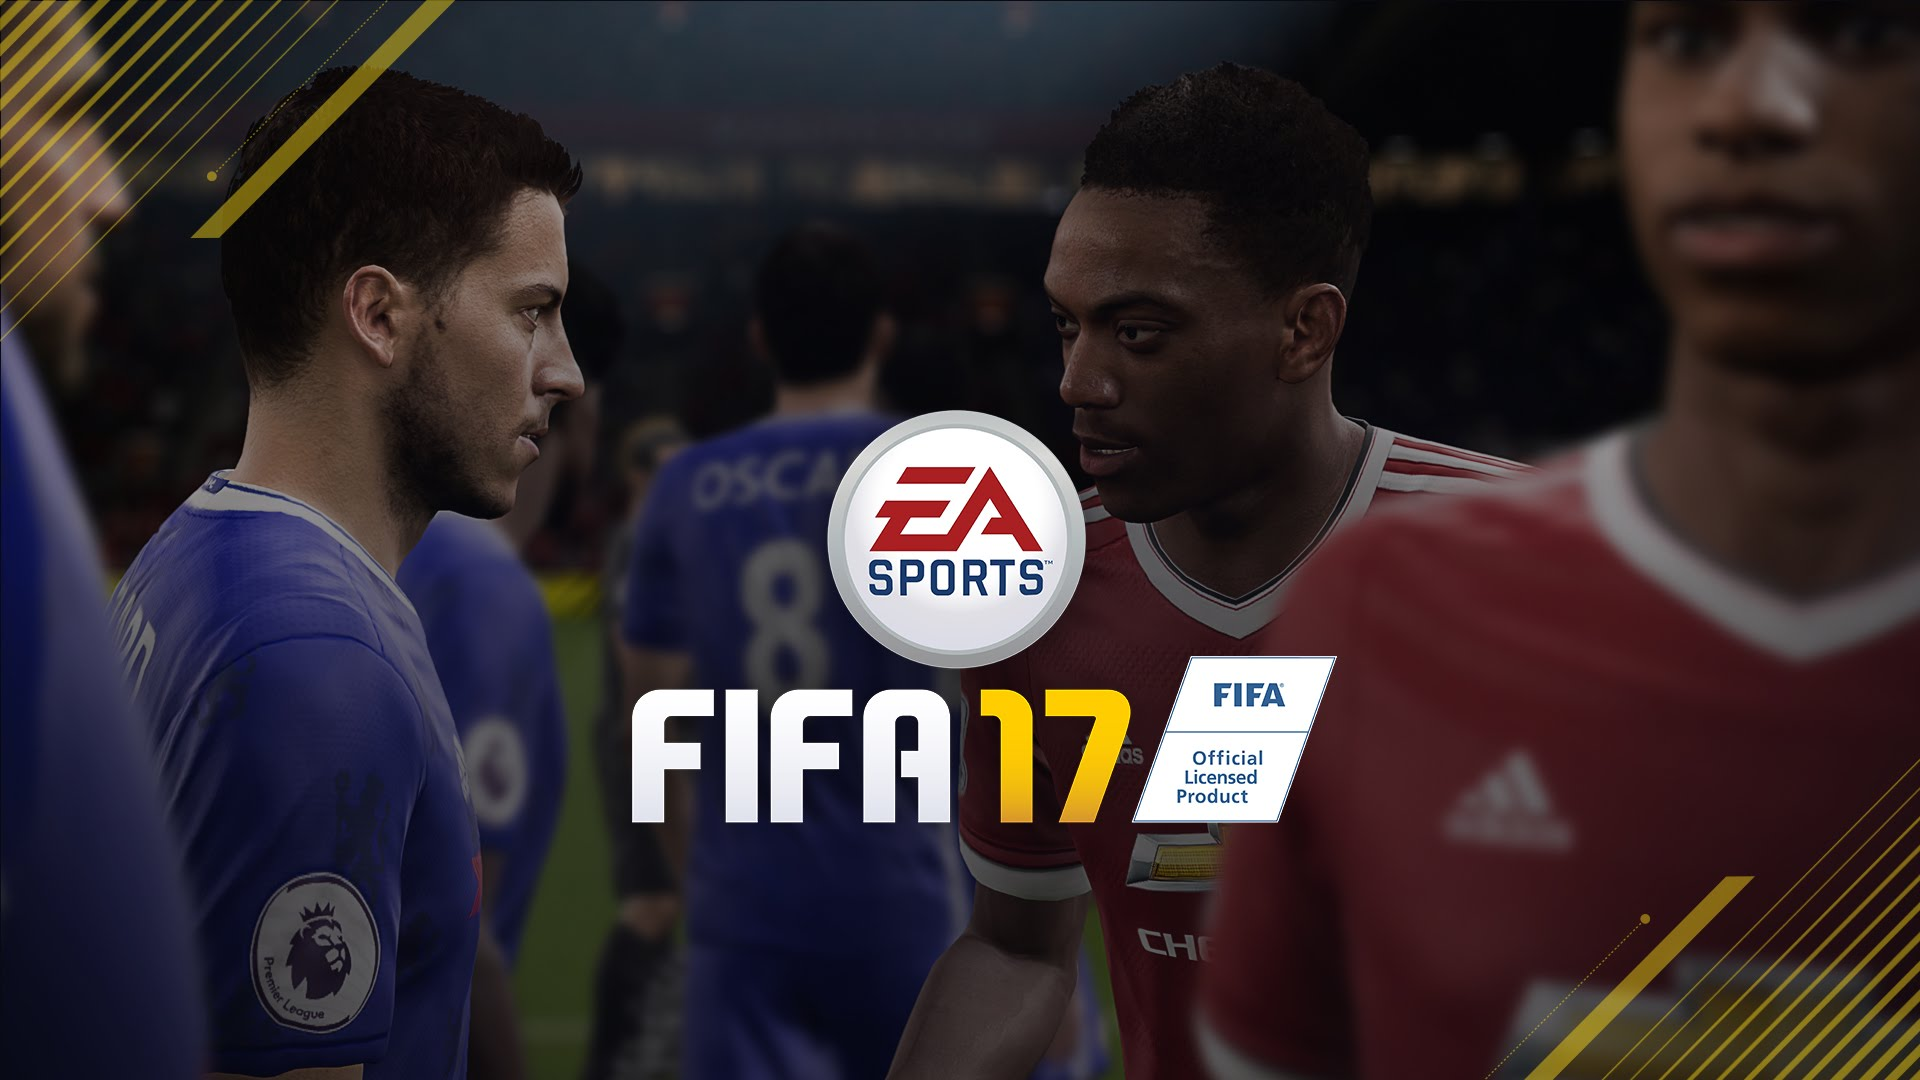 fifa17-front